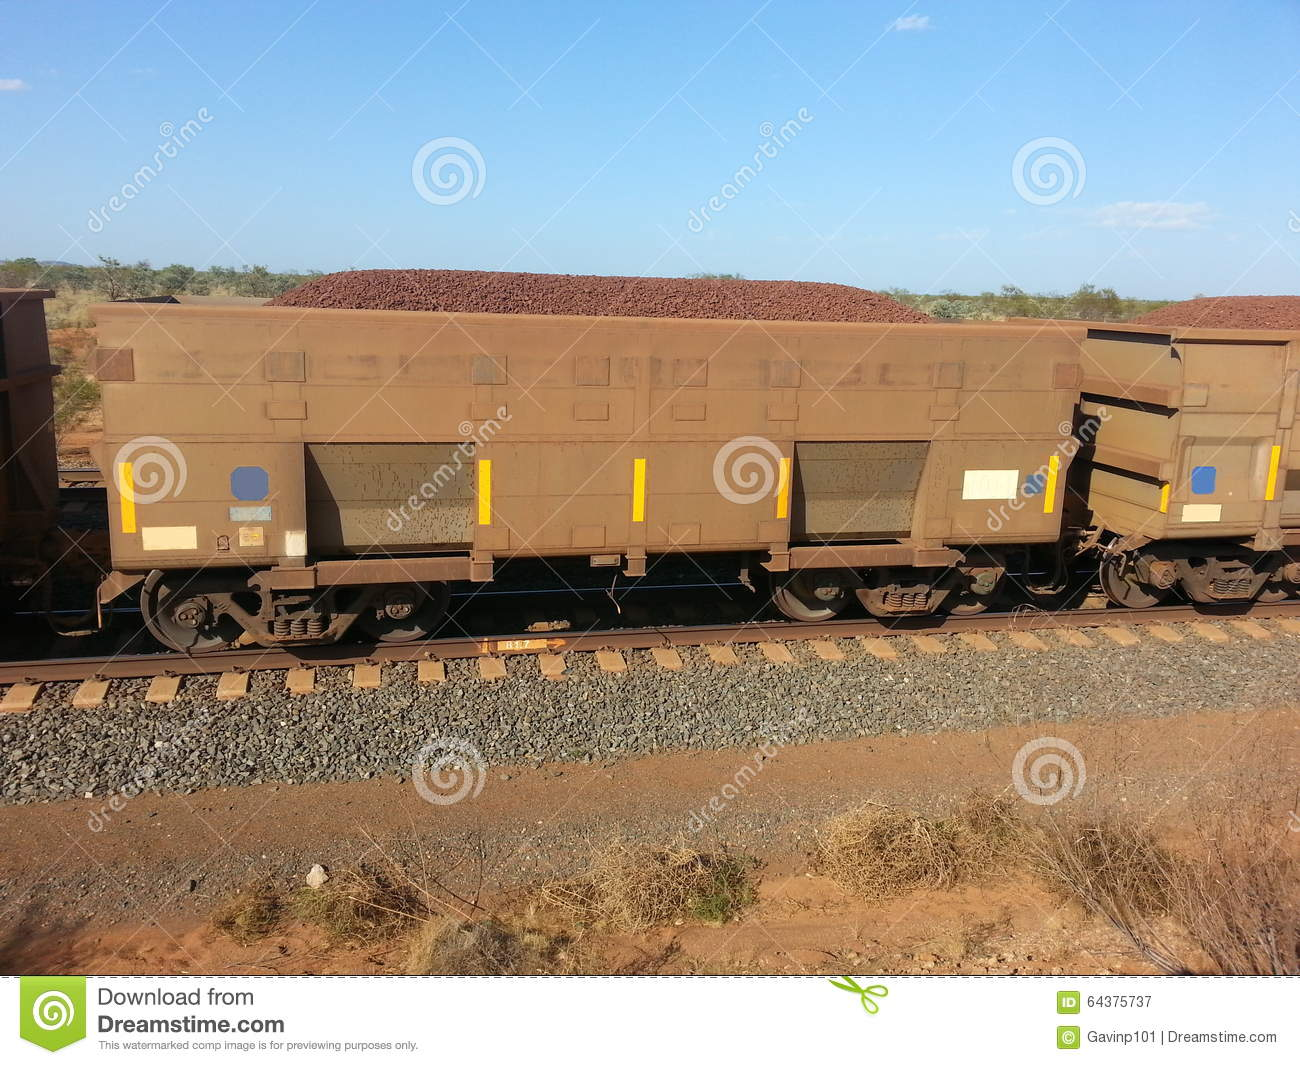 rail-carriage-filled-iron-ore-western-australia-pilbara-railway-train-line-64375737.jpg